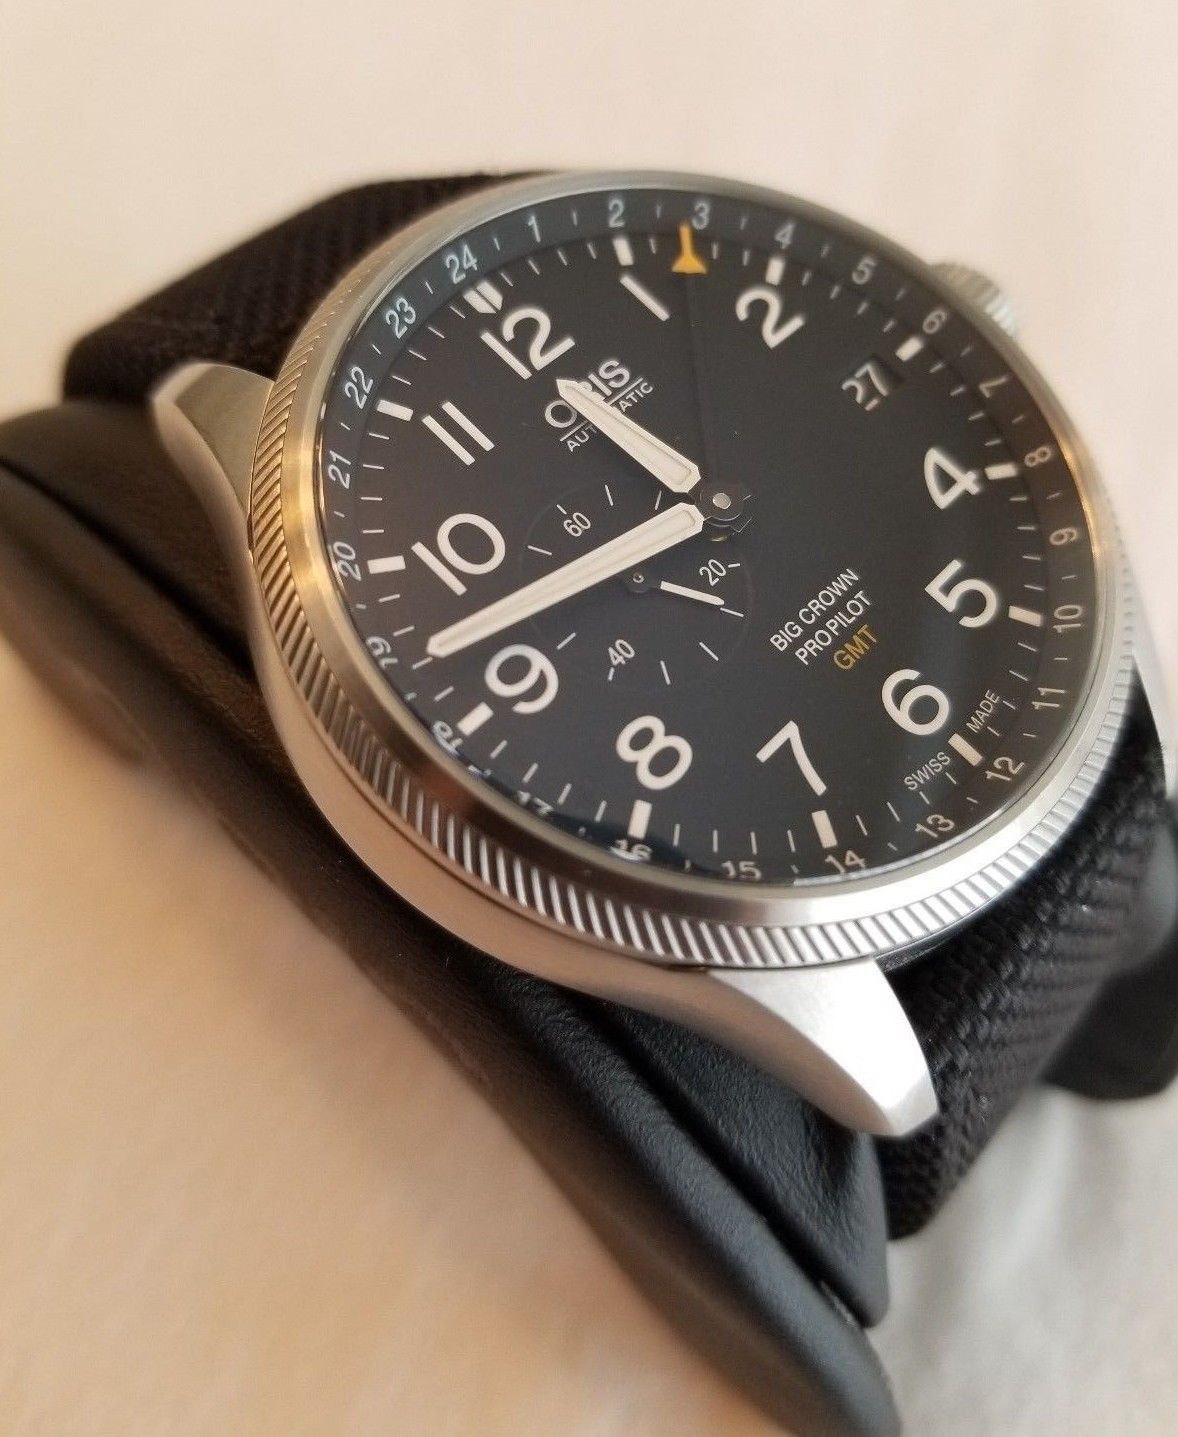 Oris Big Crown Propilot Gmt Small Second Automatic Men S Watch 748 7710 4164 Fs Watches For Men Watches Unique Watches